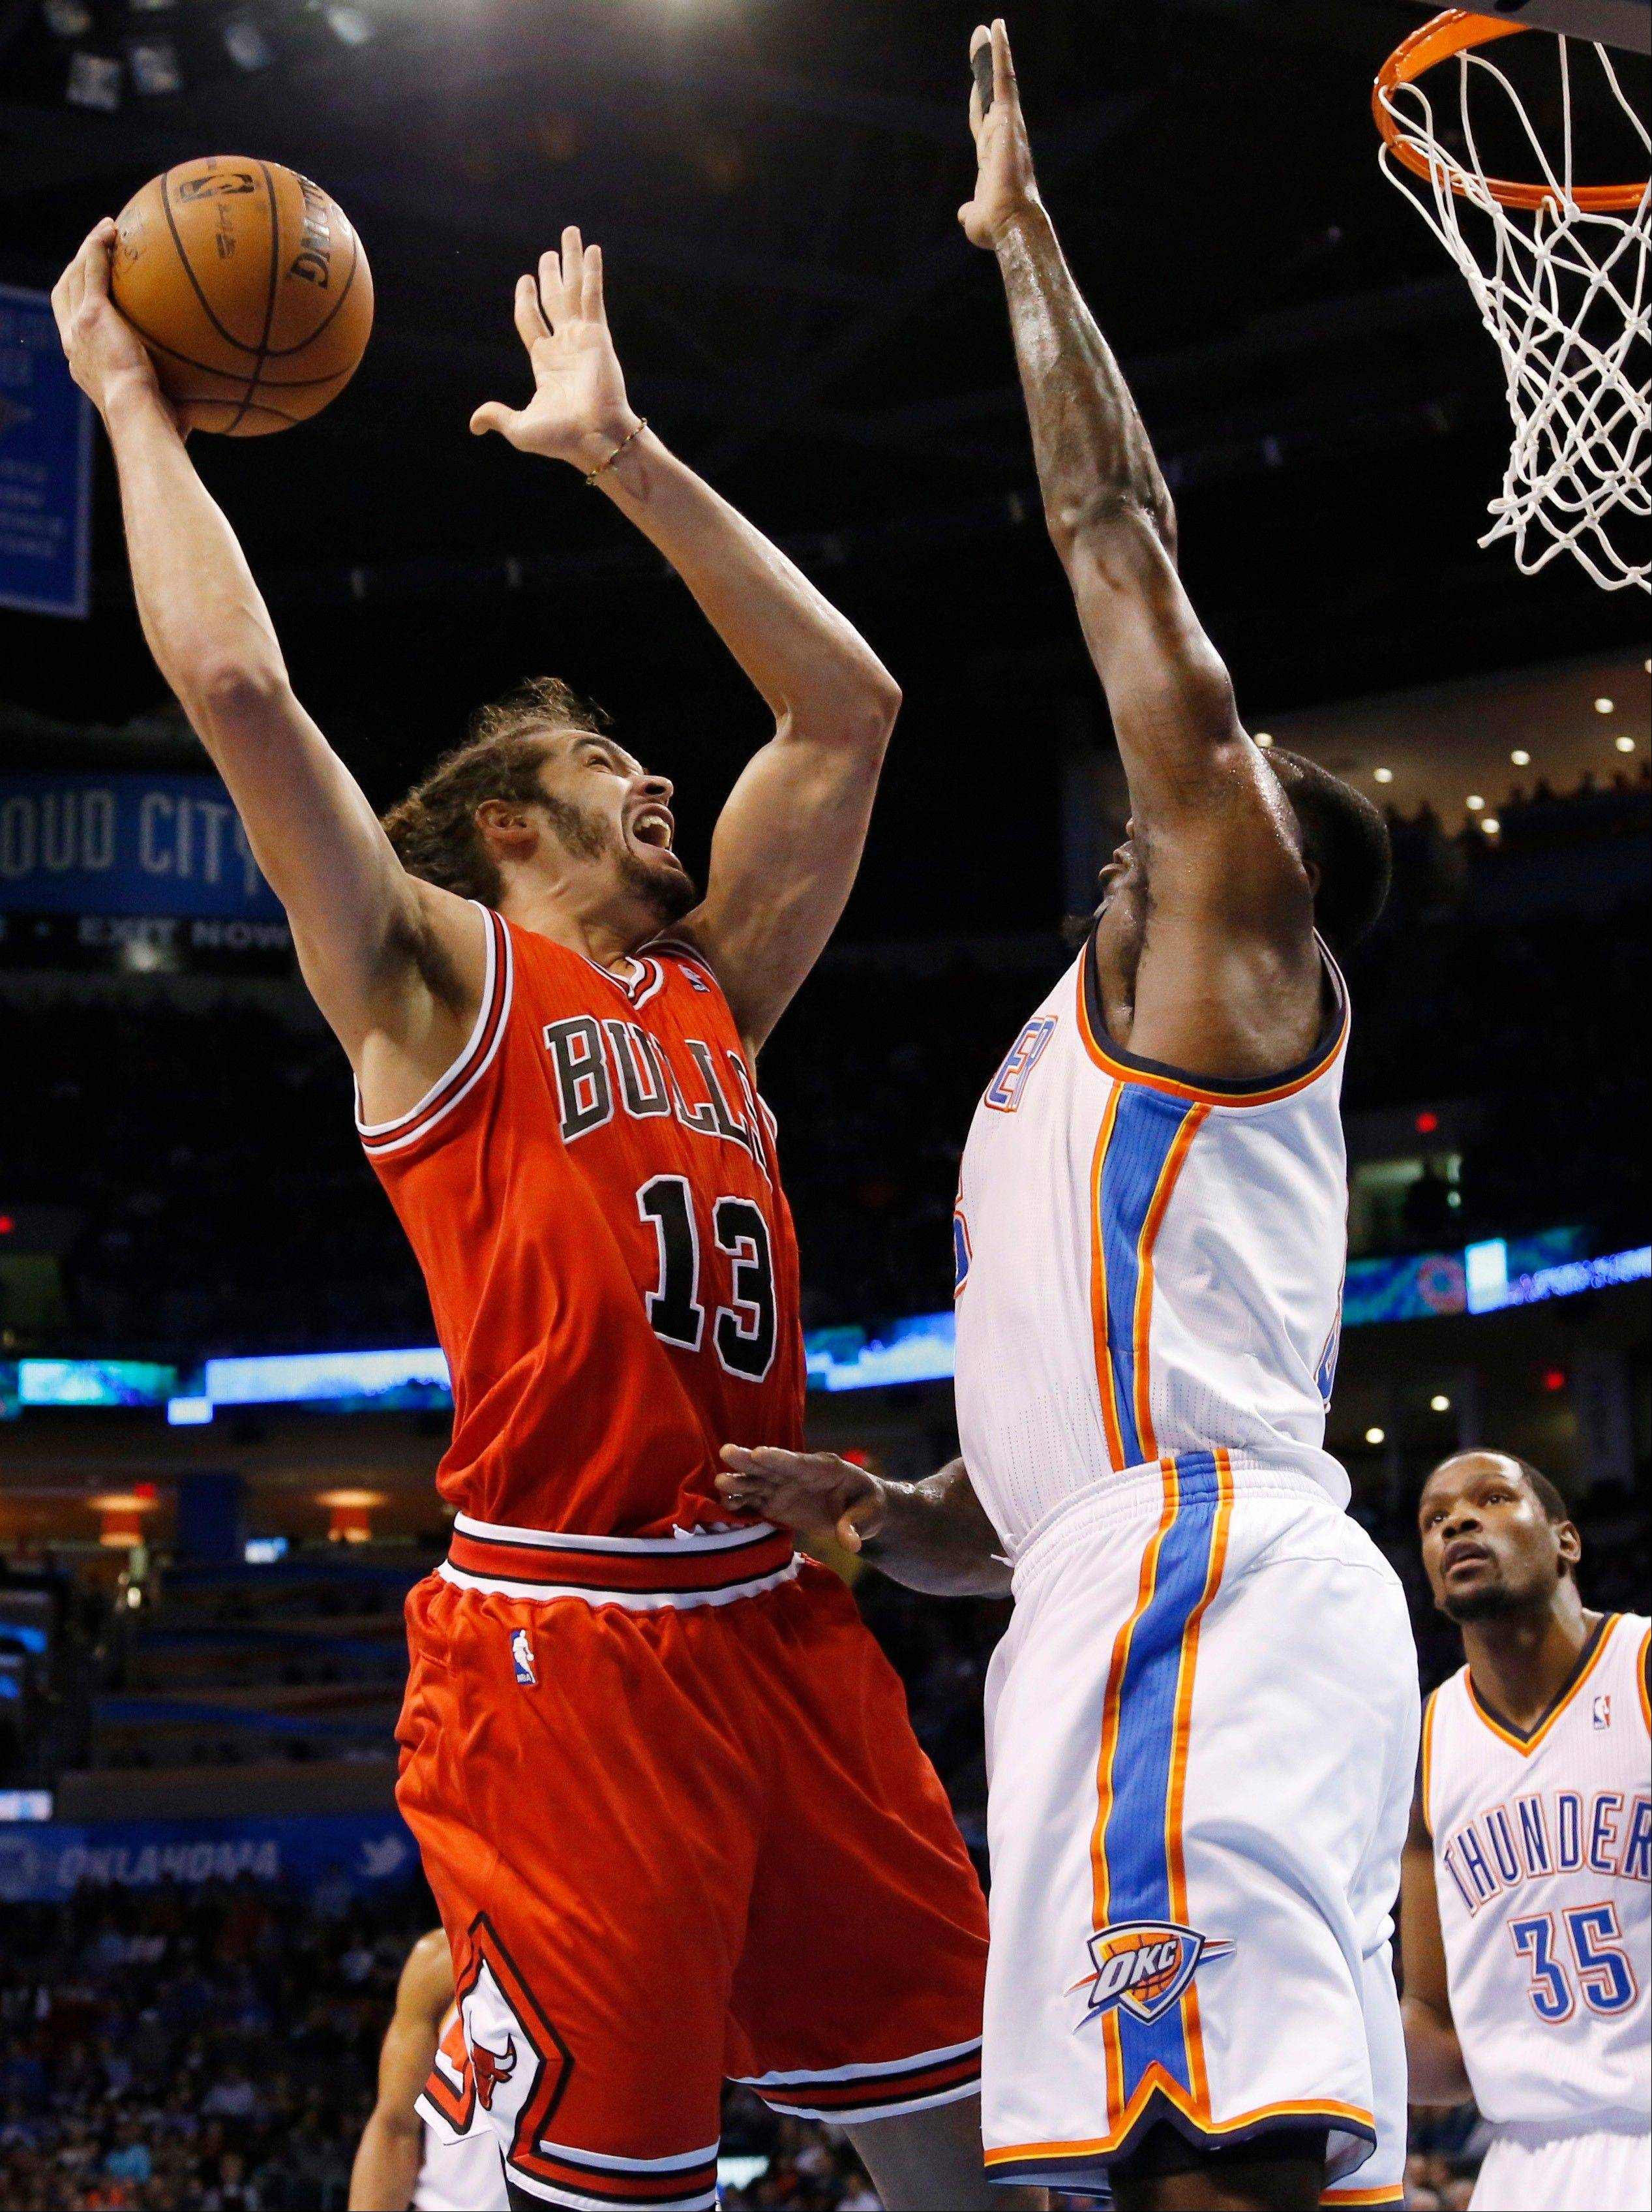 The Bulls' Joakim Noah is guarded by the Thunder's Kendrick on Thursday. After the game, Noah was visiting tormer teammate Thabo Sefolosha in the Thunder locker room when Perkins complained loudly about Noah's presence.